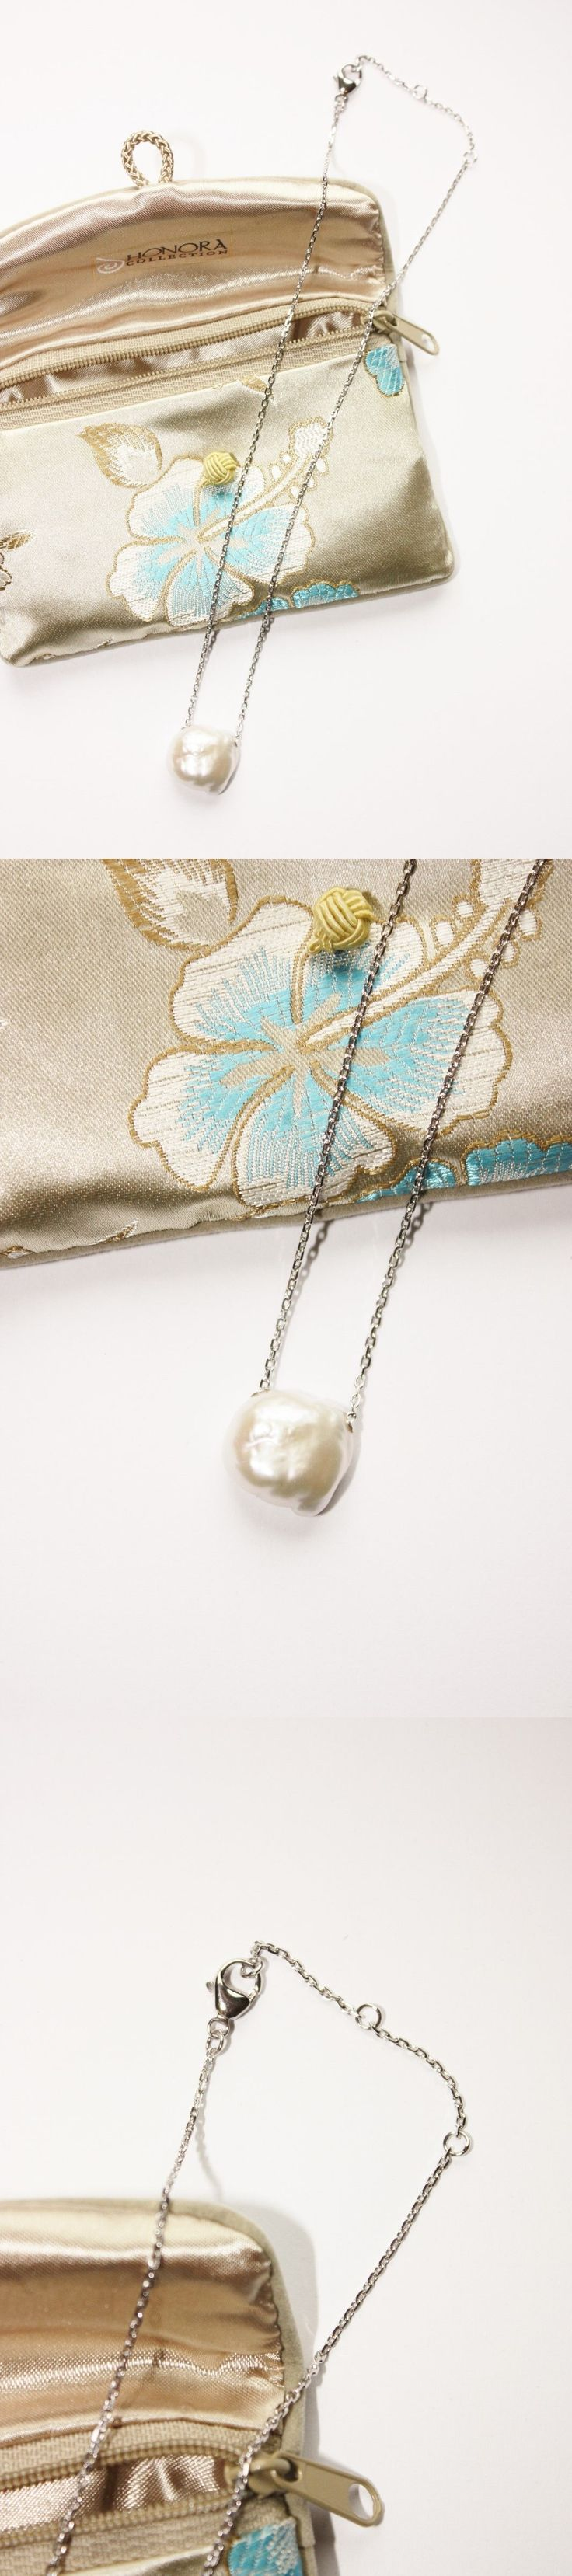 Pearl 164333: Bnib Honora Qvc Cultured 14Mm Souffle White Pearl Sterling Silver Necklace! -> BUY IT NOW ONLY: $99.97 on eBay!